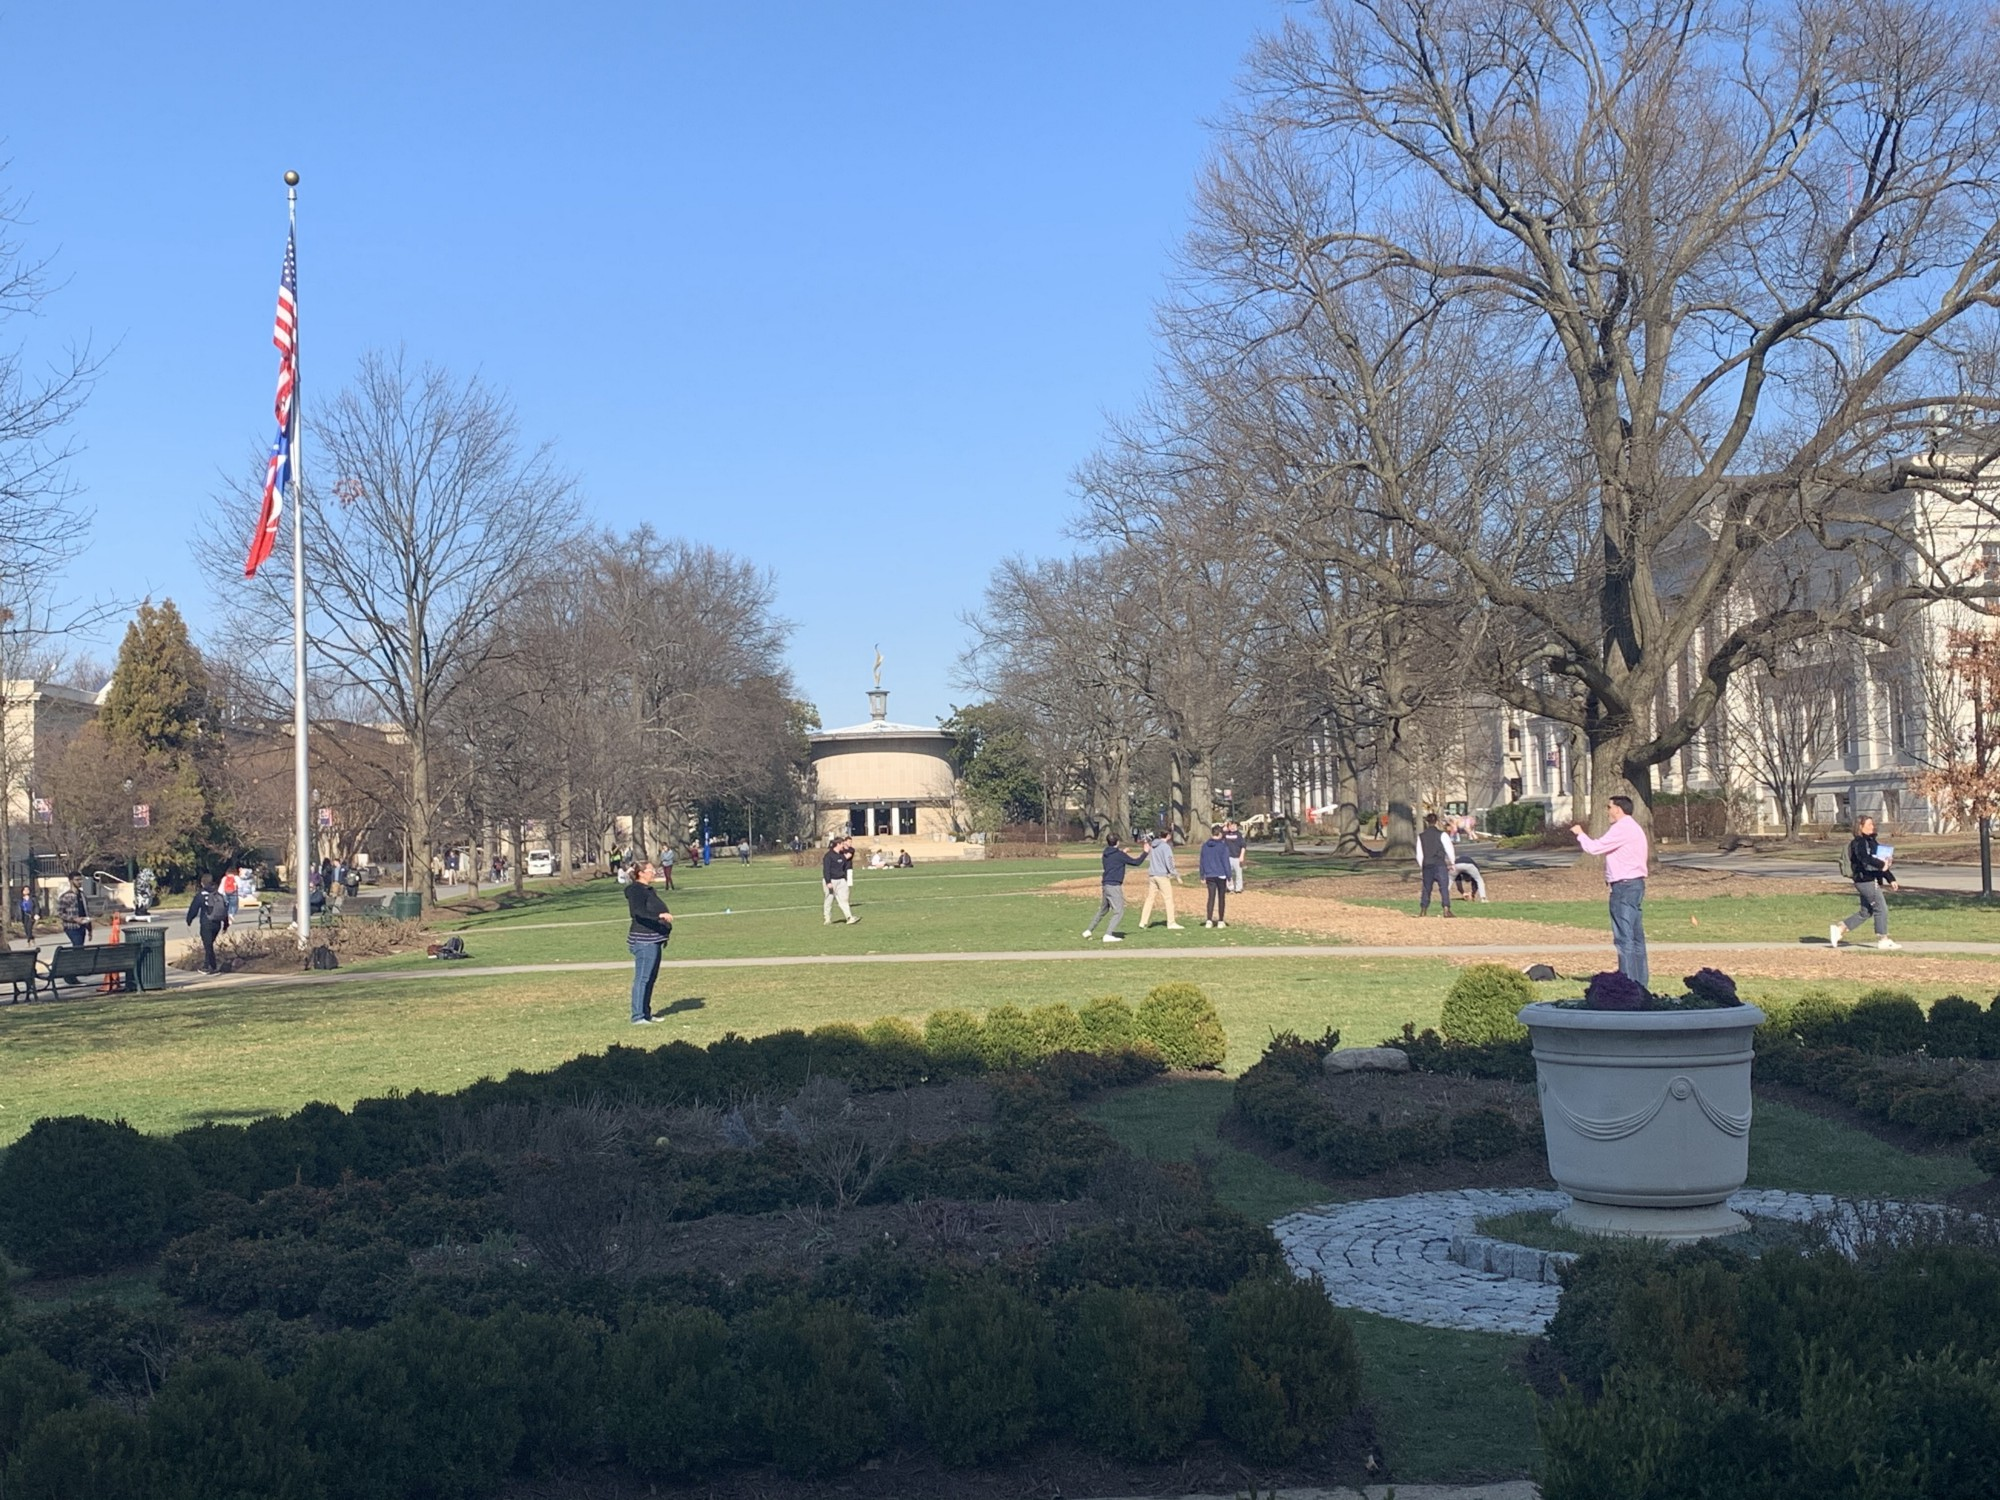 American University Quad with several people walking and playing catch on a pre-spring, sunny day in February of 2020.